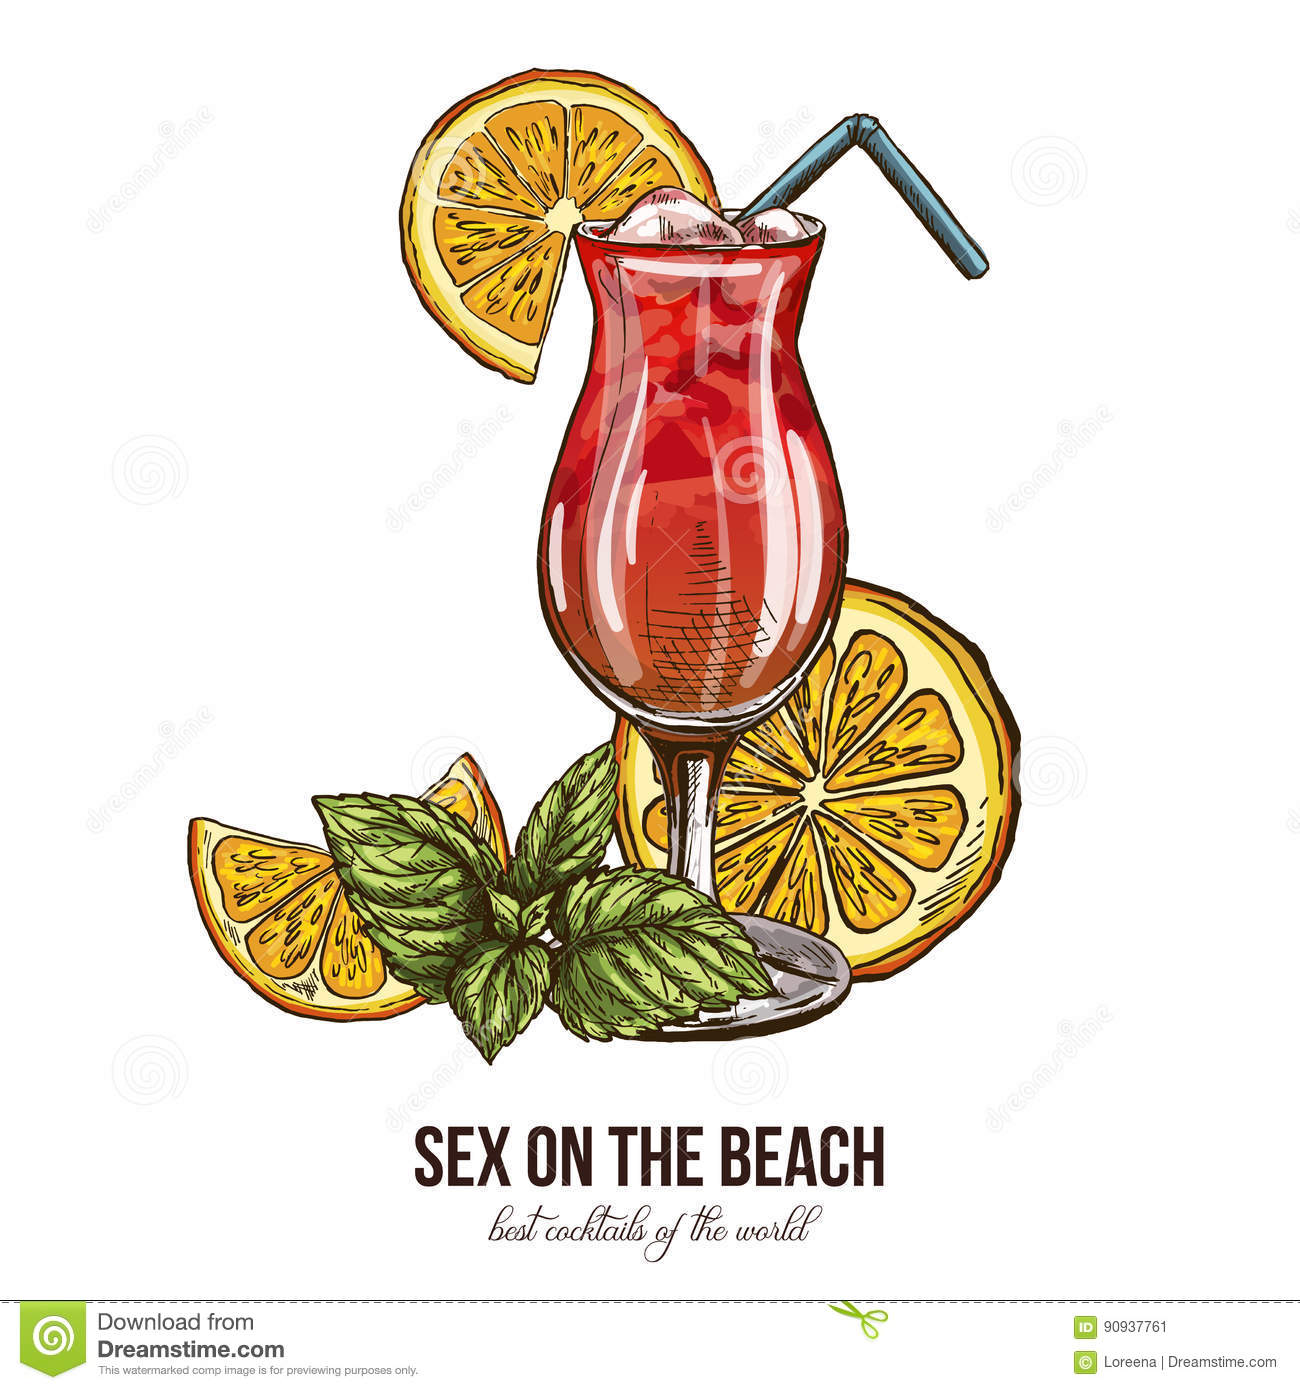 Download sex on the beach